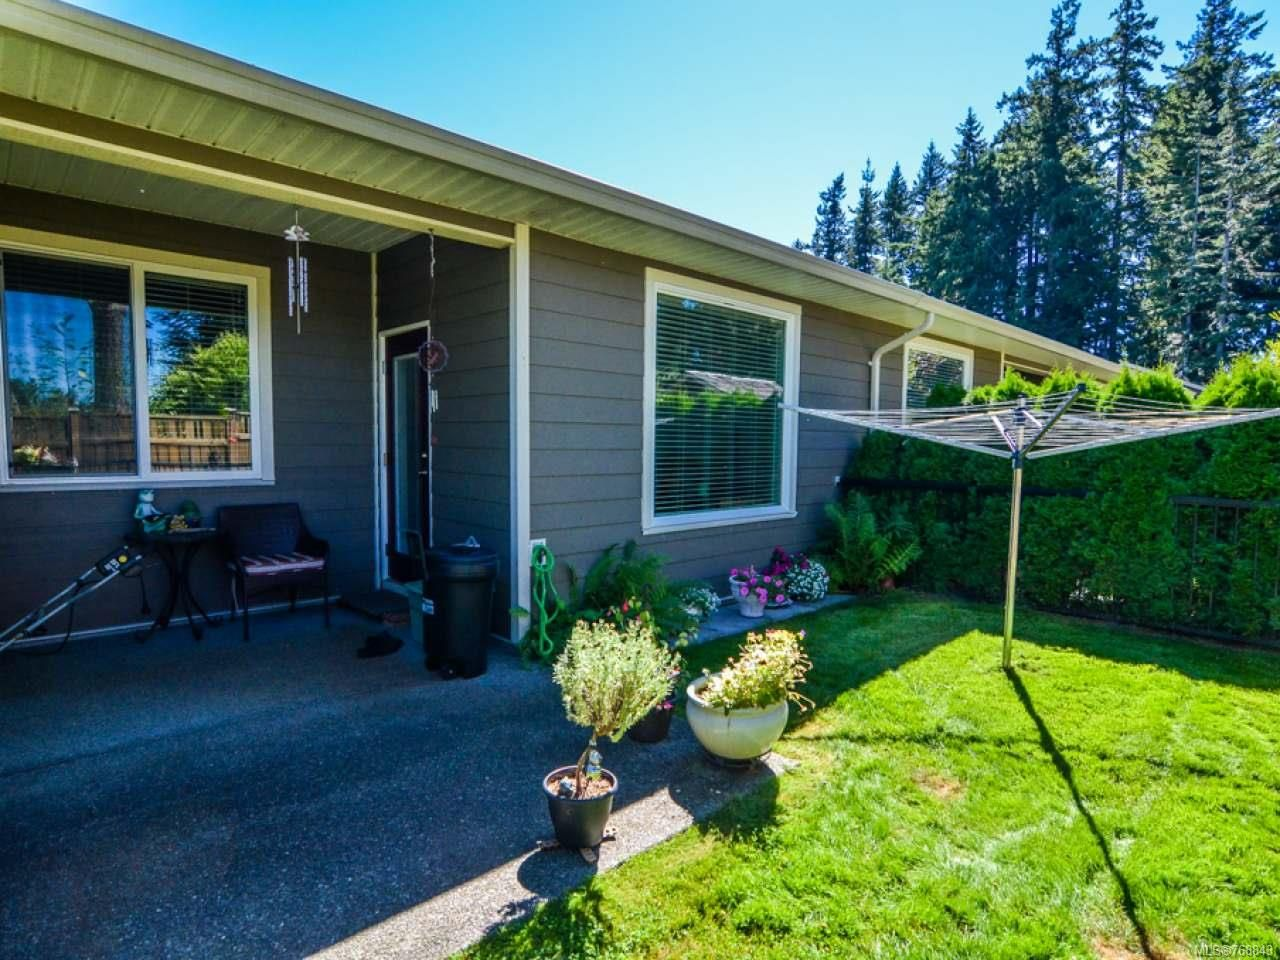 Photo 8: Photos: 15 346 Erickson Rd in CAMPBELL RIVER: CR Willow Point Row/Townhouse for sale (Campbell River)  : MLS®# 768843